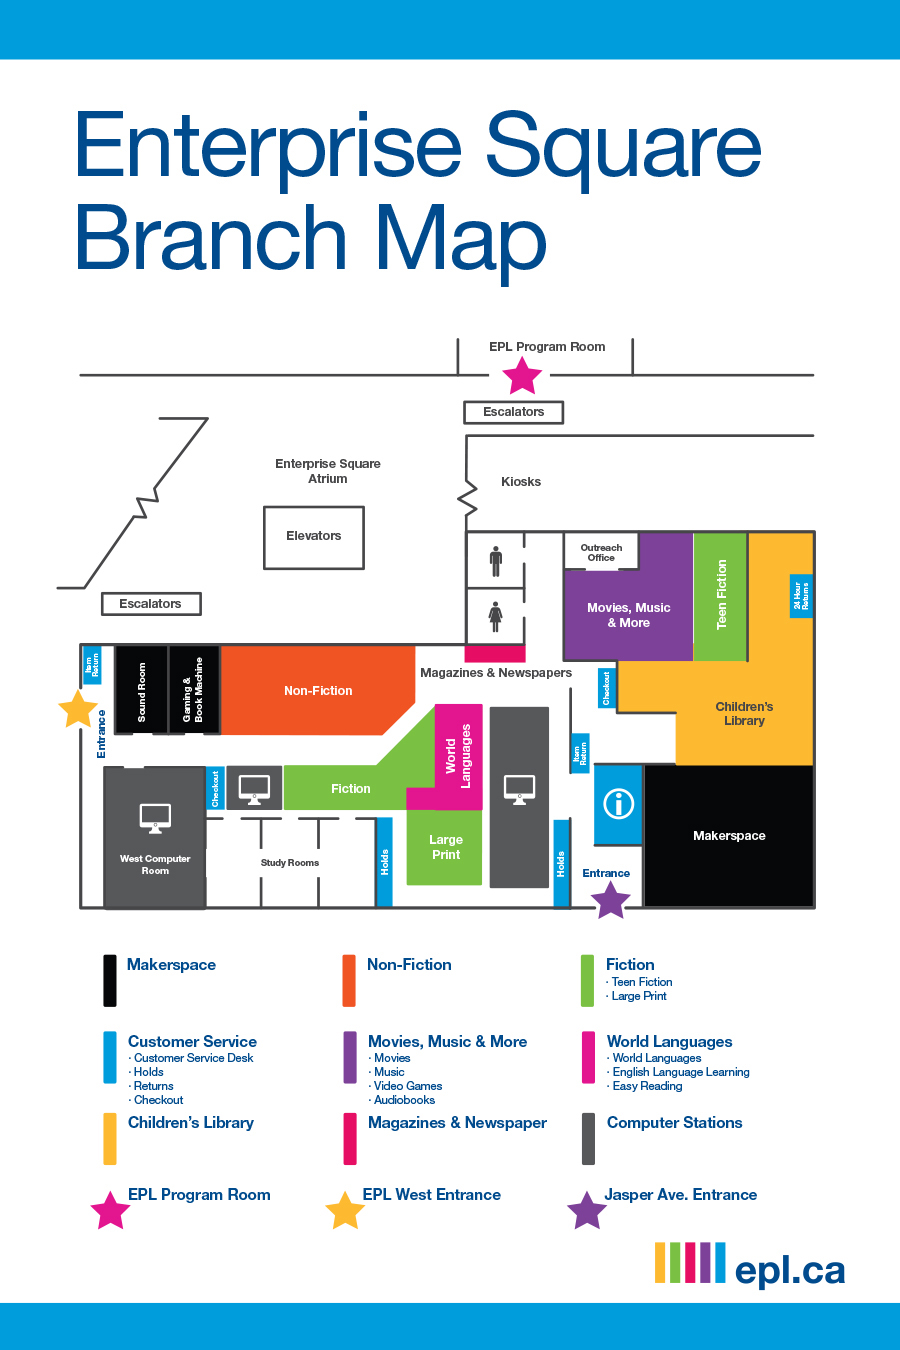 Map of EPL's Enterprise Square Branch